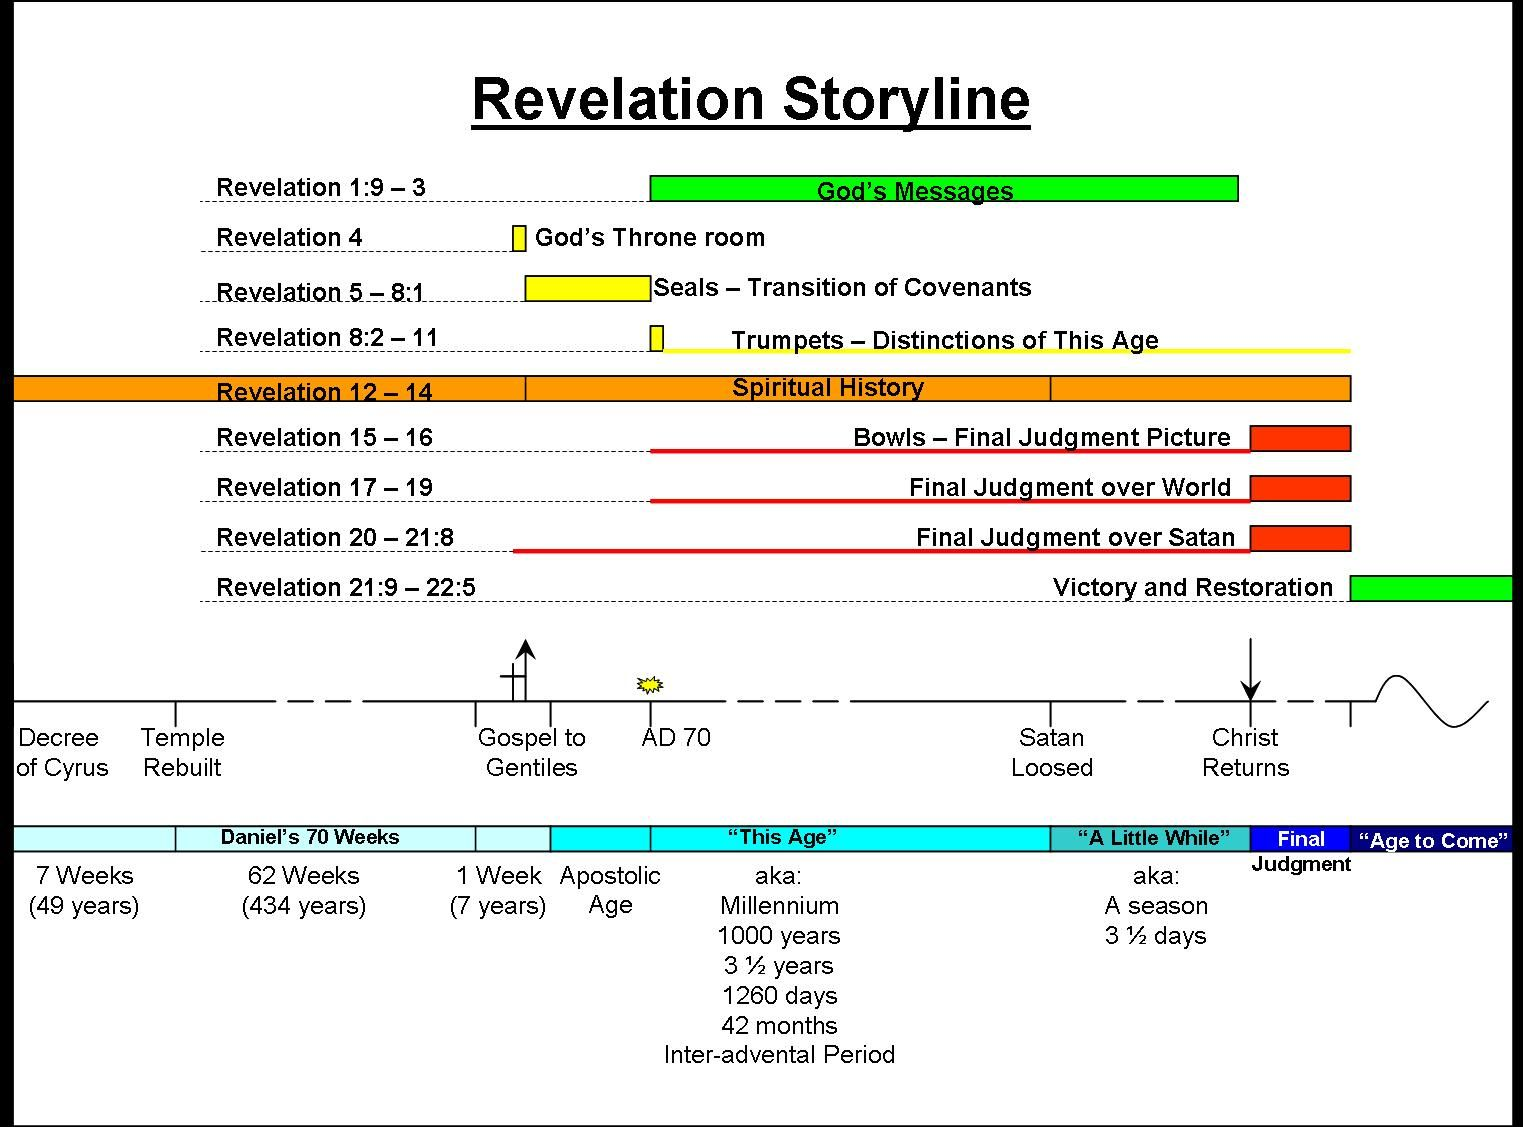 cf6f529200744d83d4a095c71ccf471e image result for book of revelation timeline chart jesus Basic Electrical Wiring Diagrams at soozxer.org